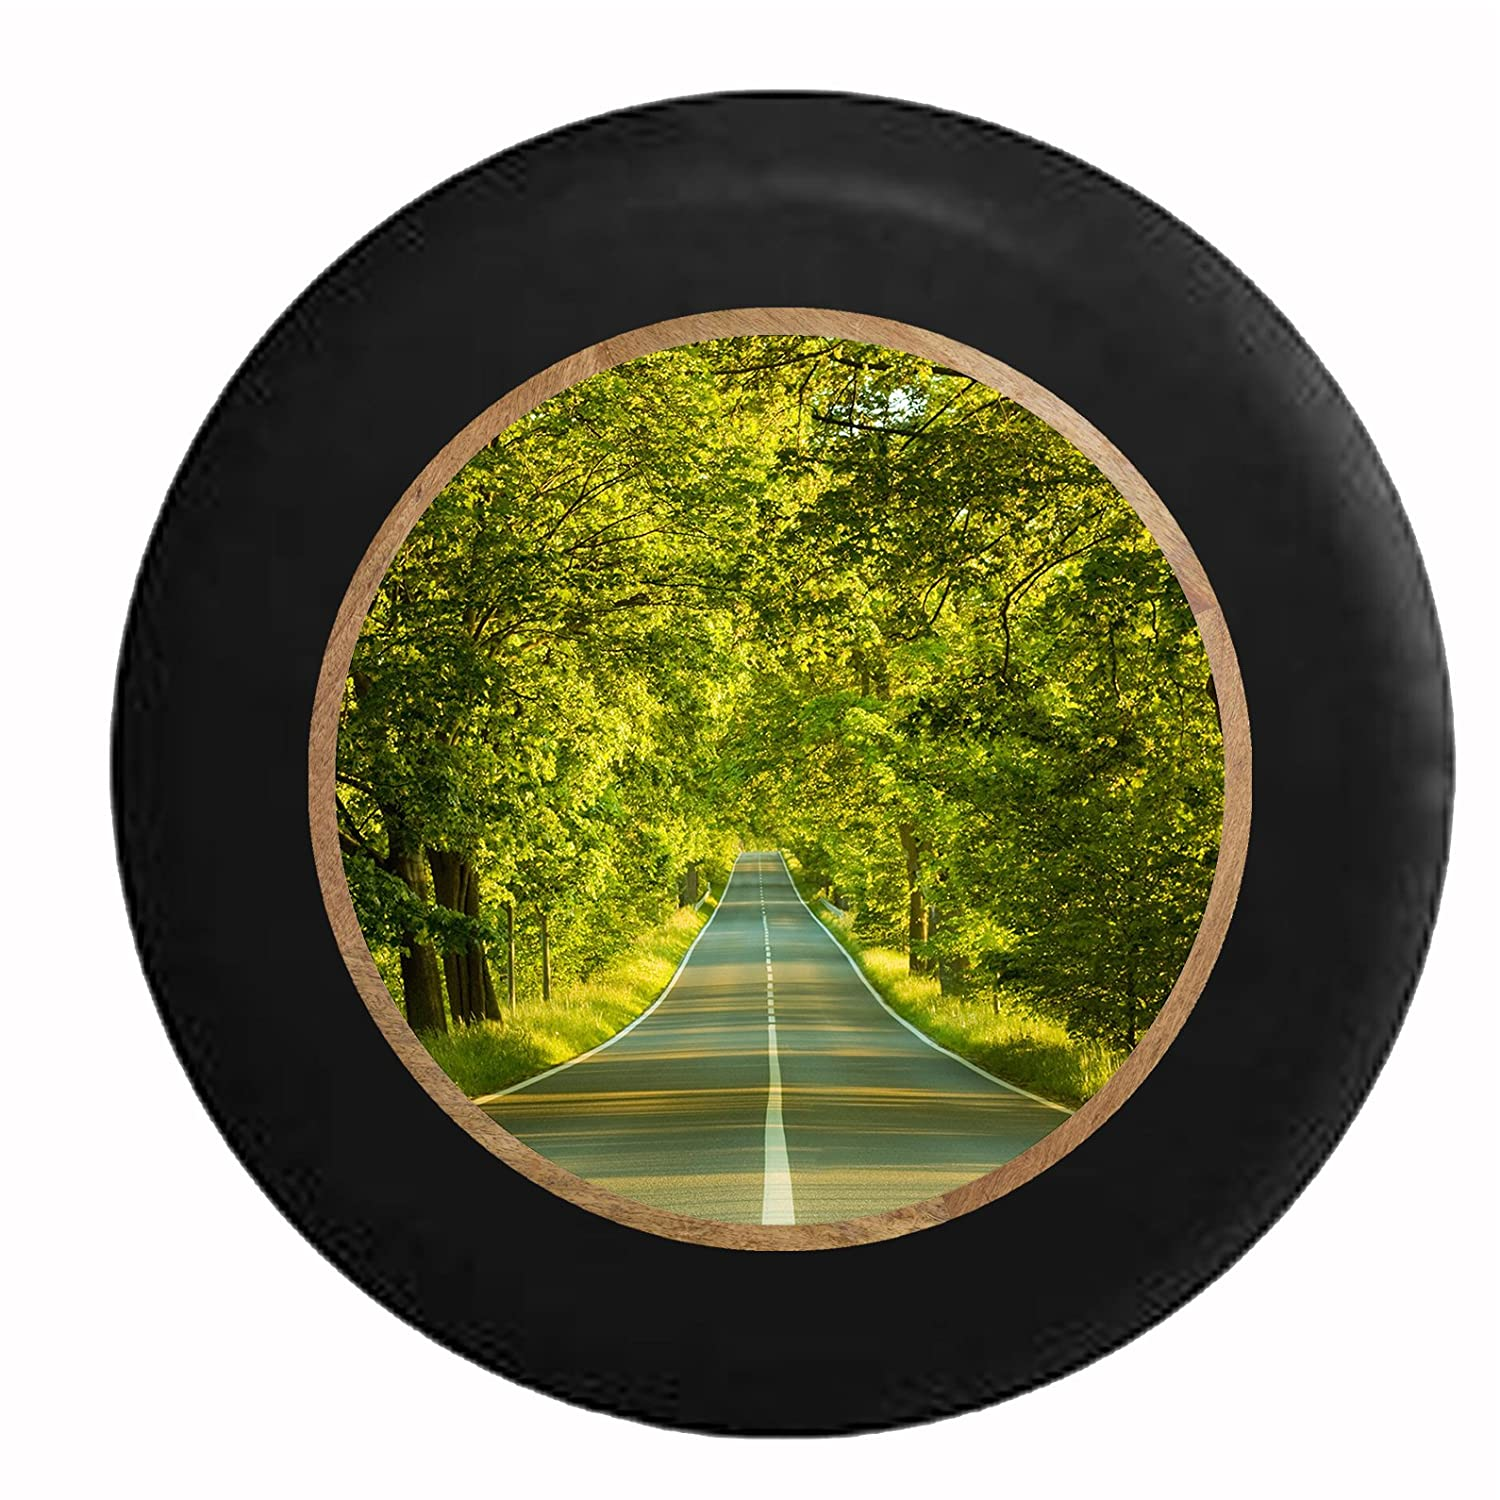 Full Color On the Road Again Travel Roads Scenic Drive Lifes Journey Jeep RV Camper Spare Tire Cover Black 26-27.5 in Pike Outdoors